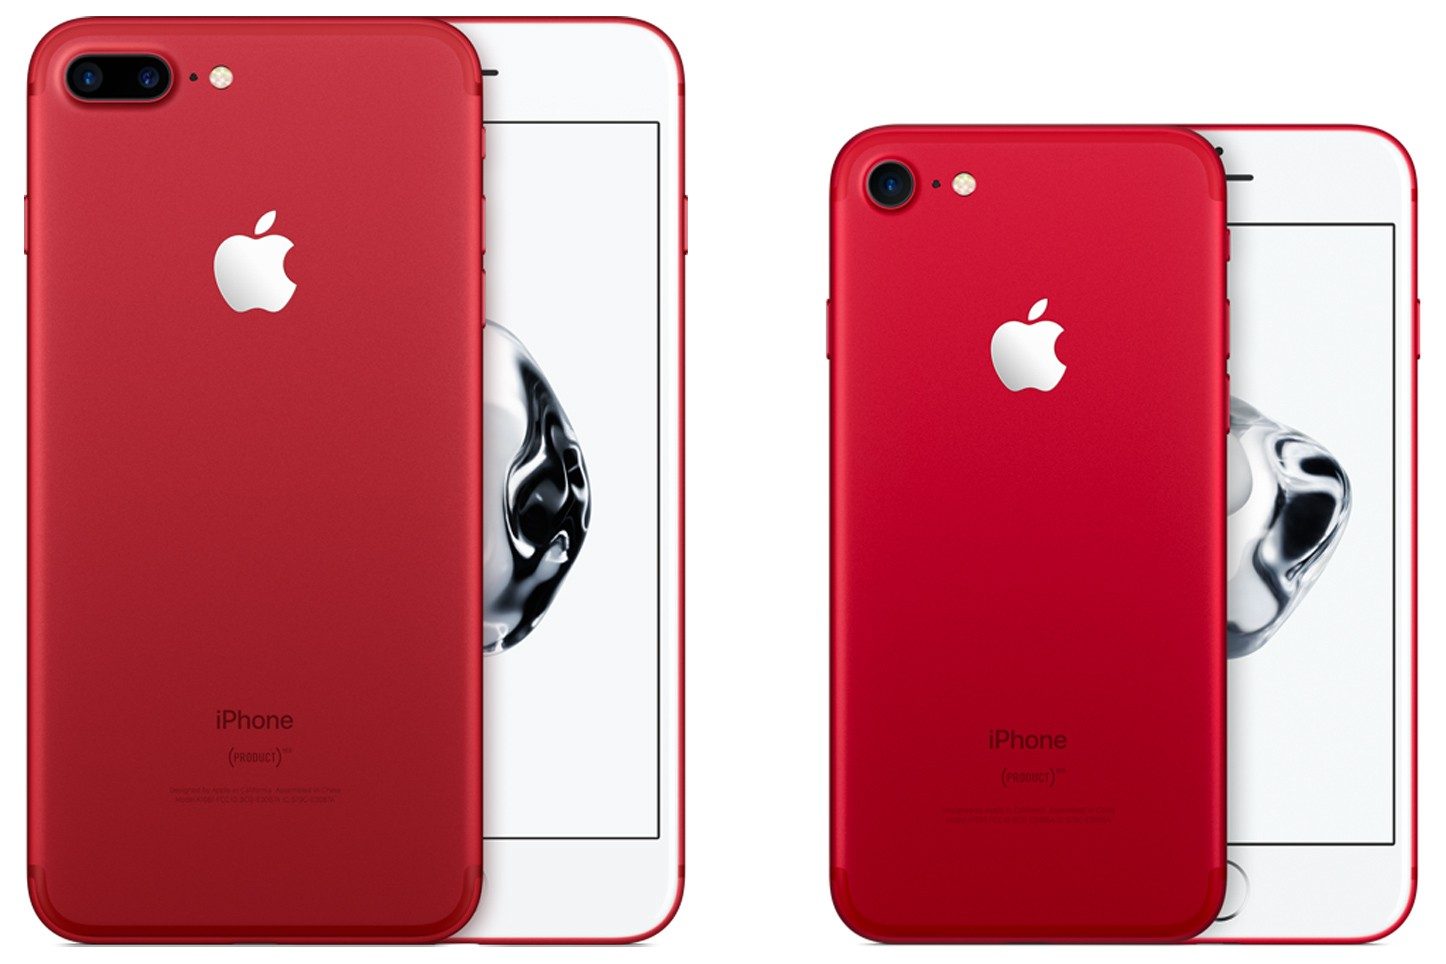 iPhone 7 and 7 Plus (PRODUCT)RED